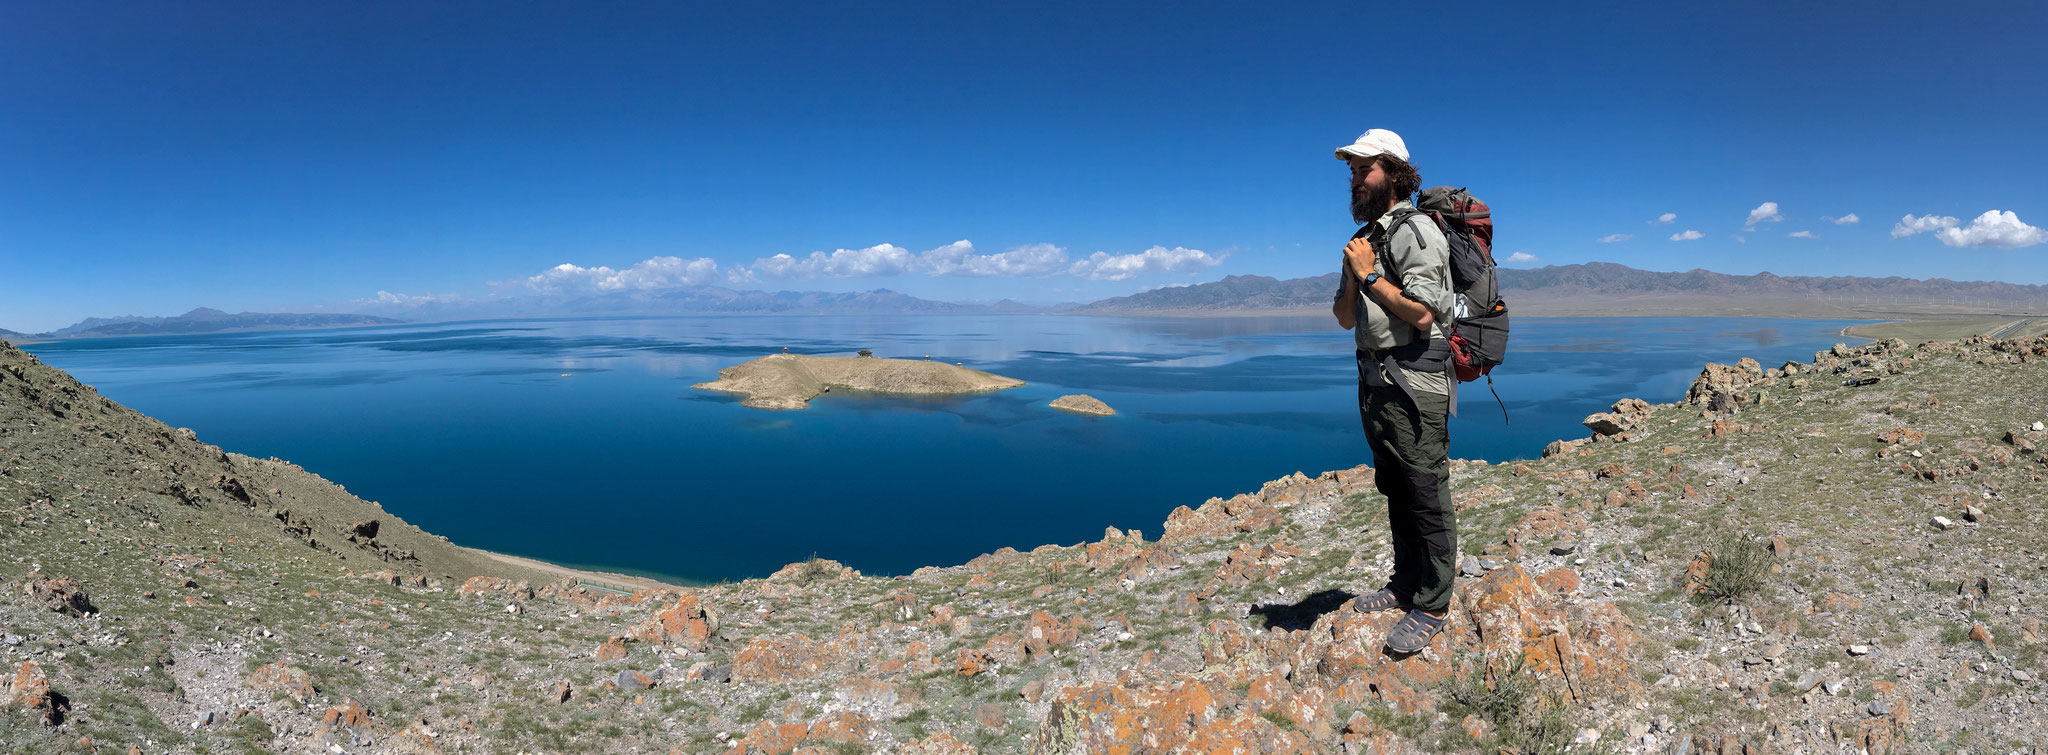 Saylim Lake, also called Sayram Lake, is the largest alpine lake in China.